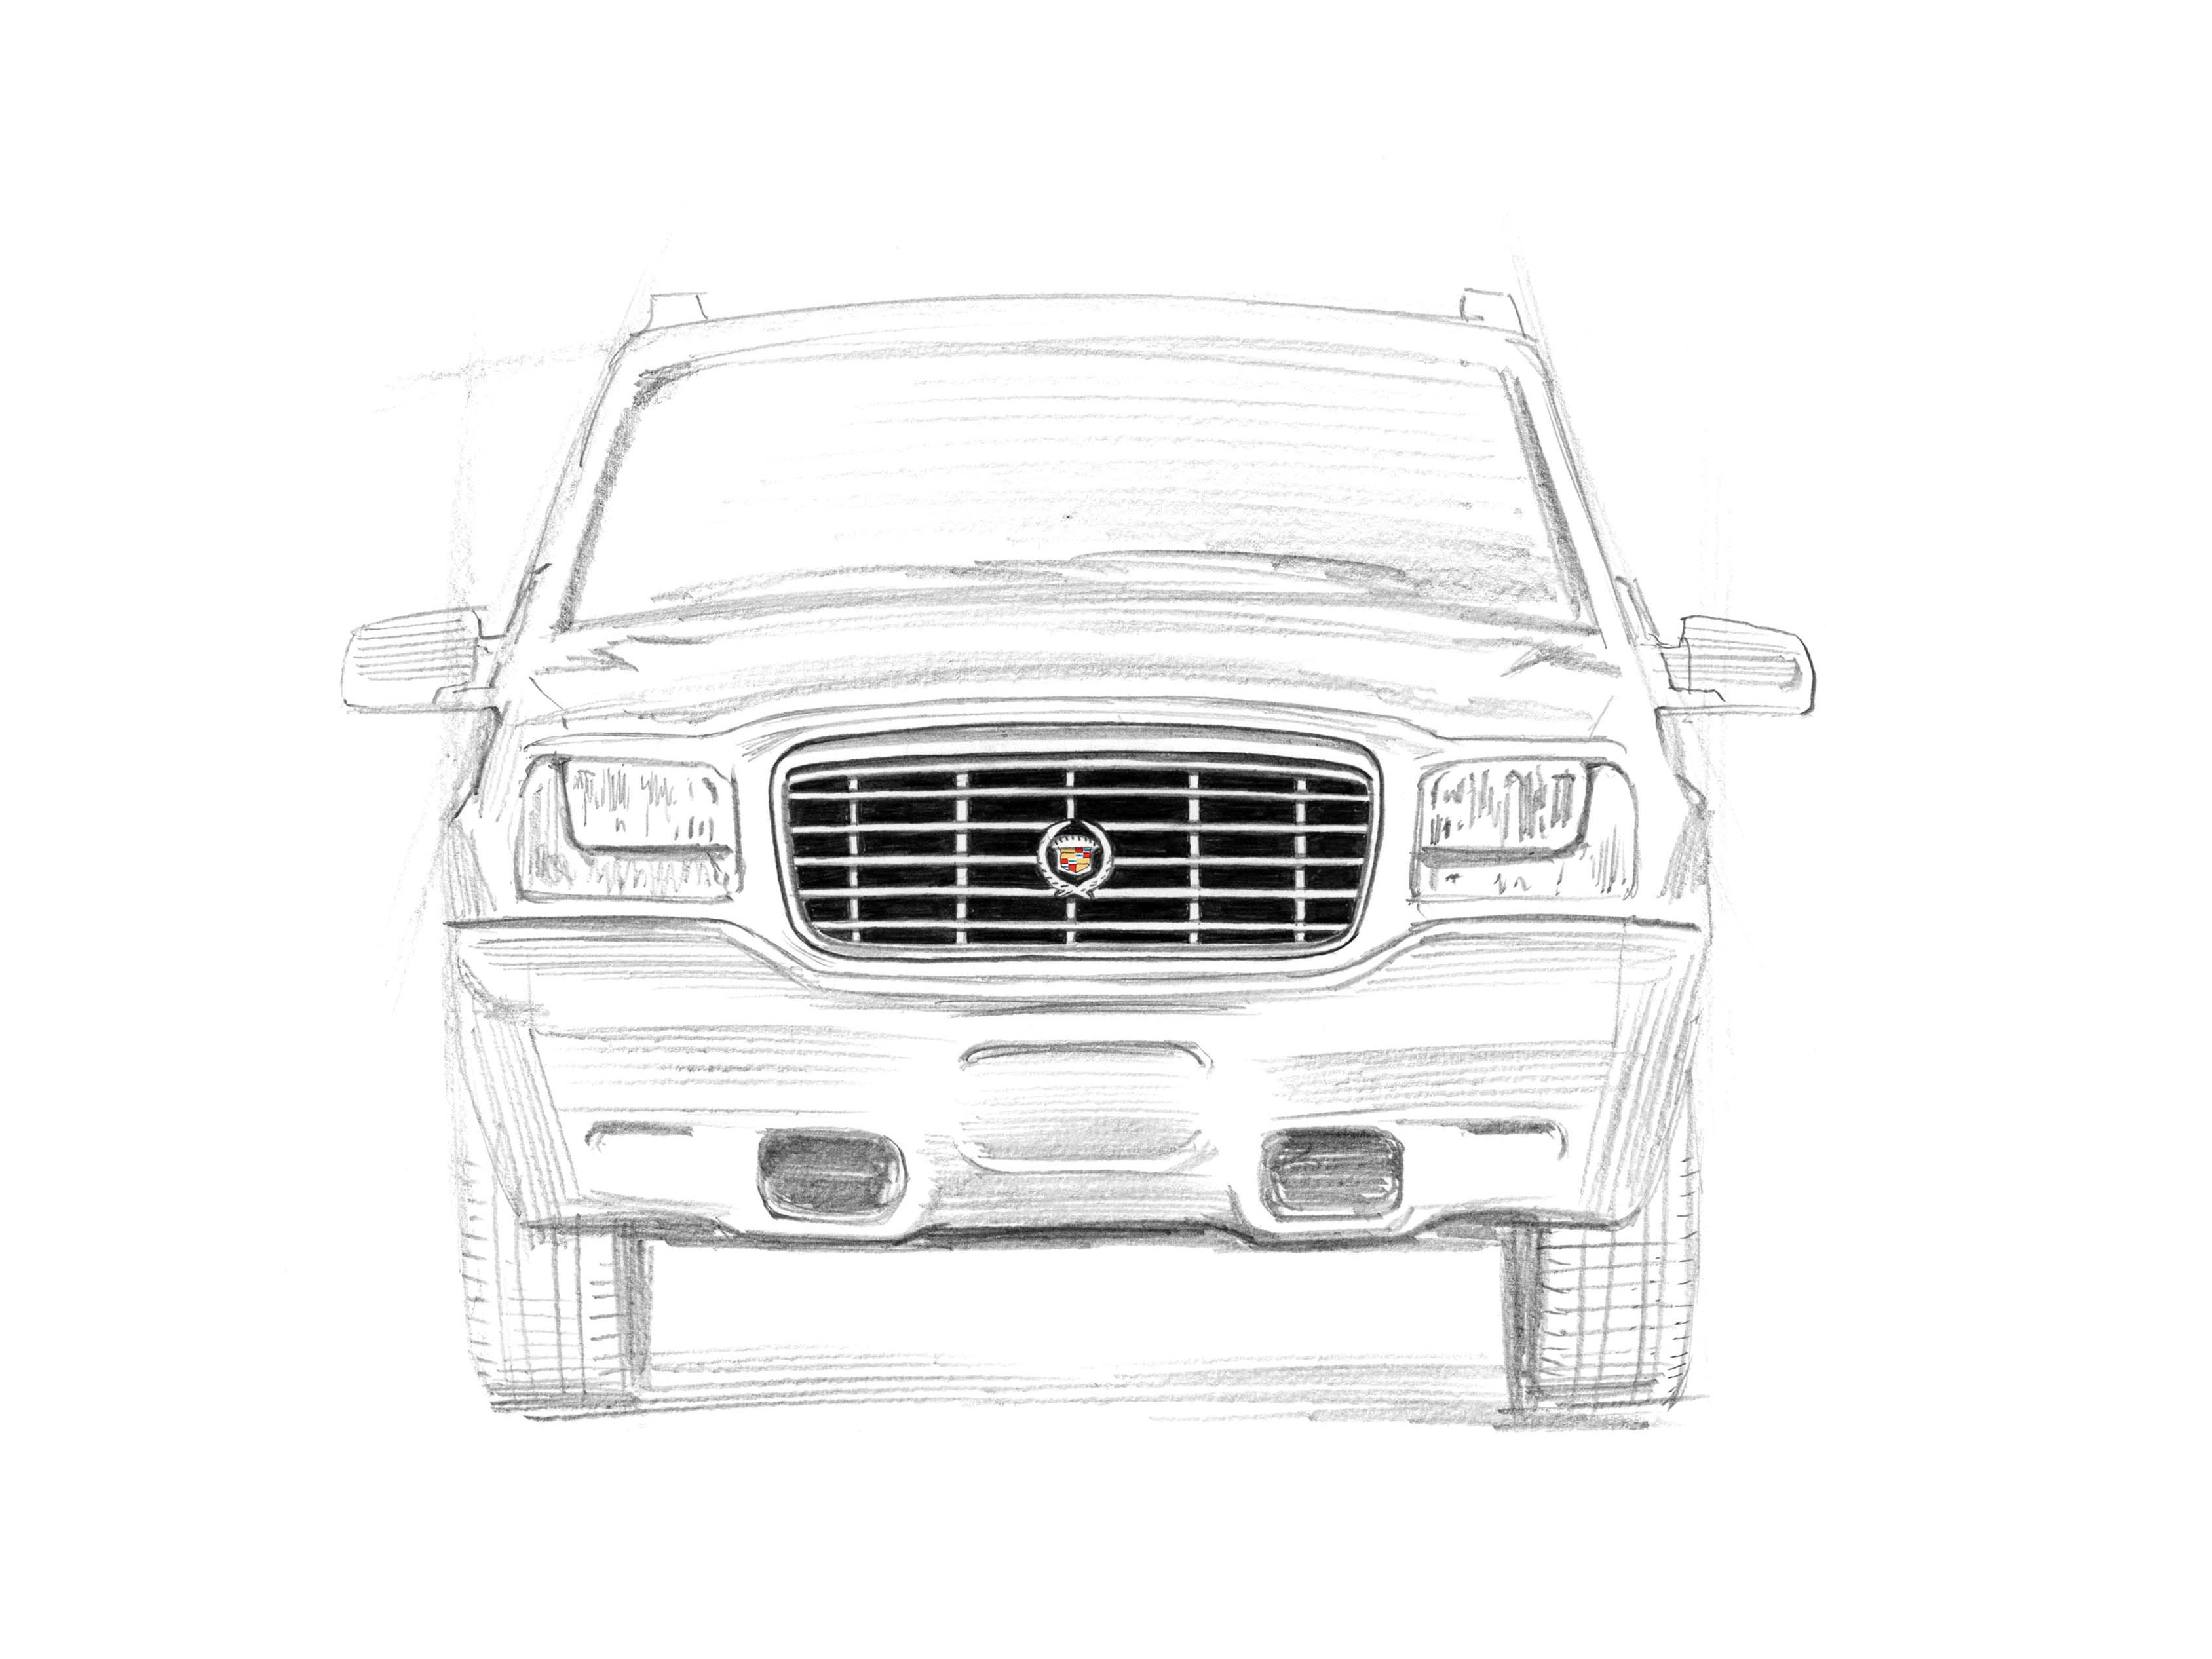 Cadillac Escalade Gen 1, 1999-2000 sketch: The Escalade debuted at Pebble Beach Concourse to do battle with the Lincoln Navigator. 20th anniversary Escalade sketch drawn by award-winning illustrator Joe McKendry.